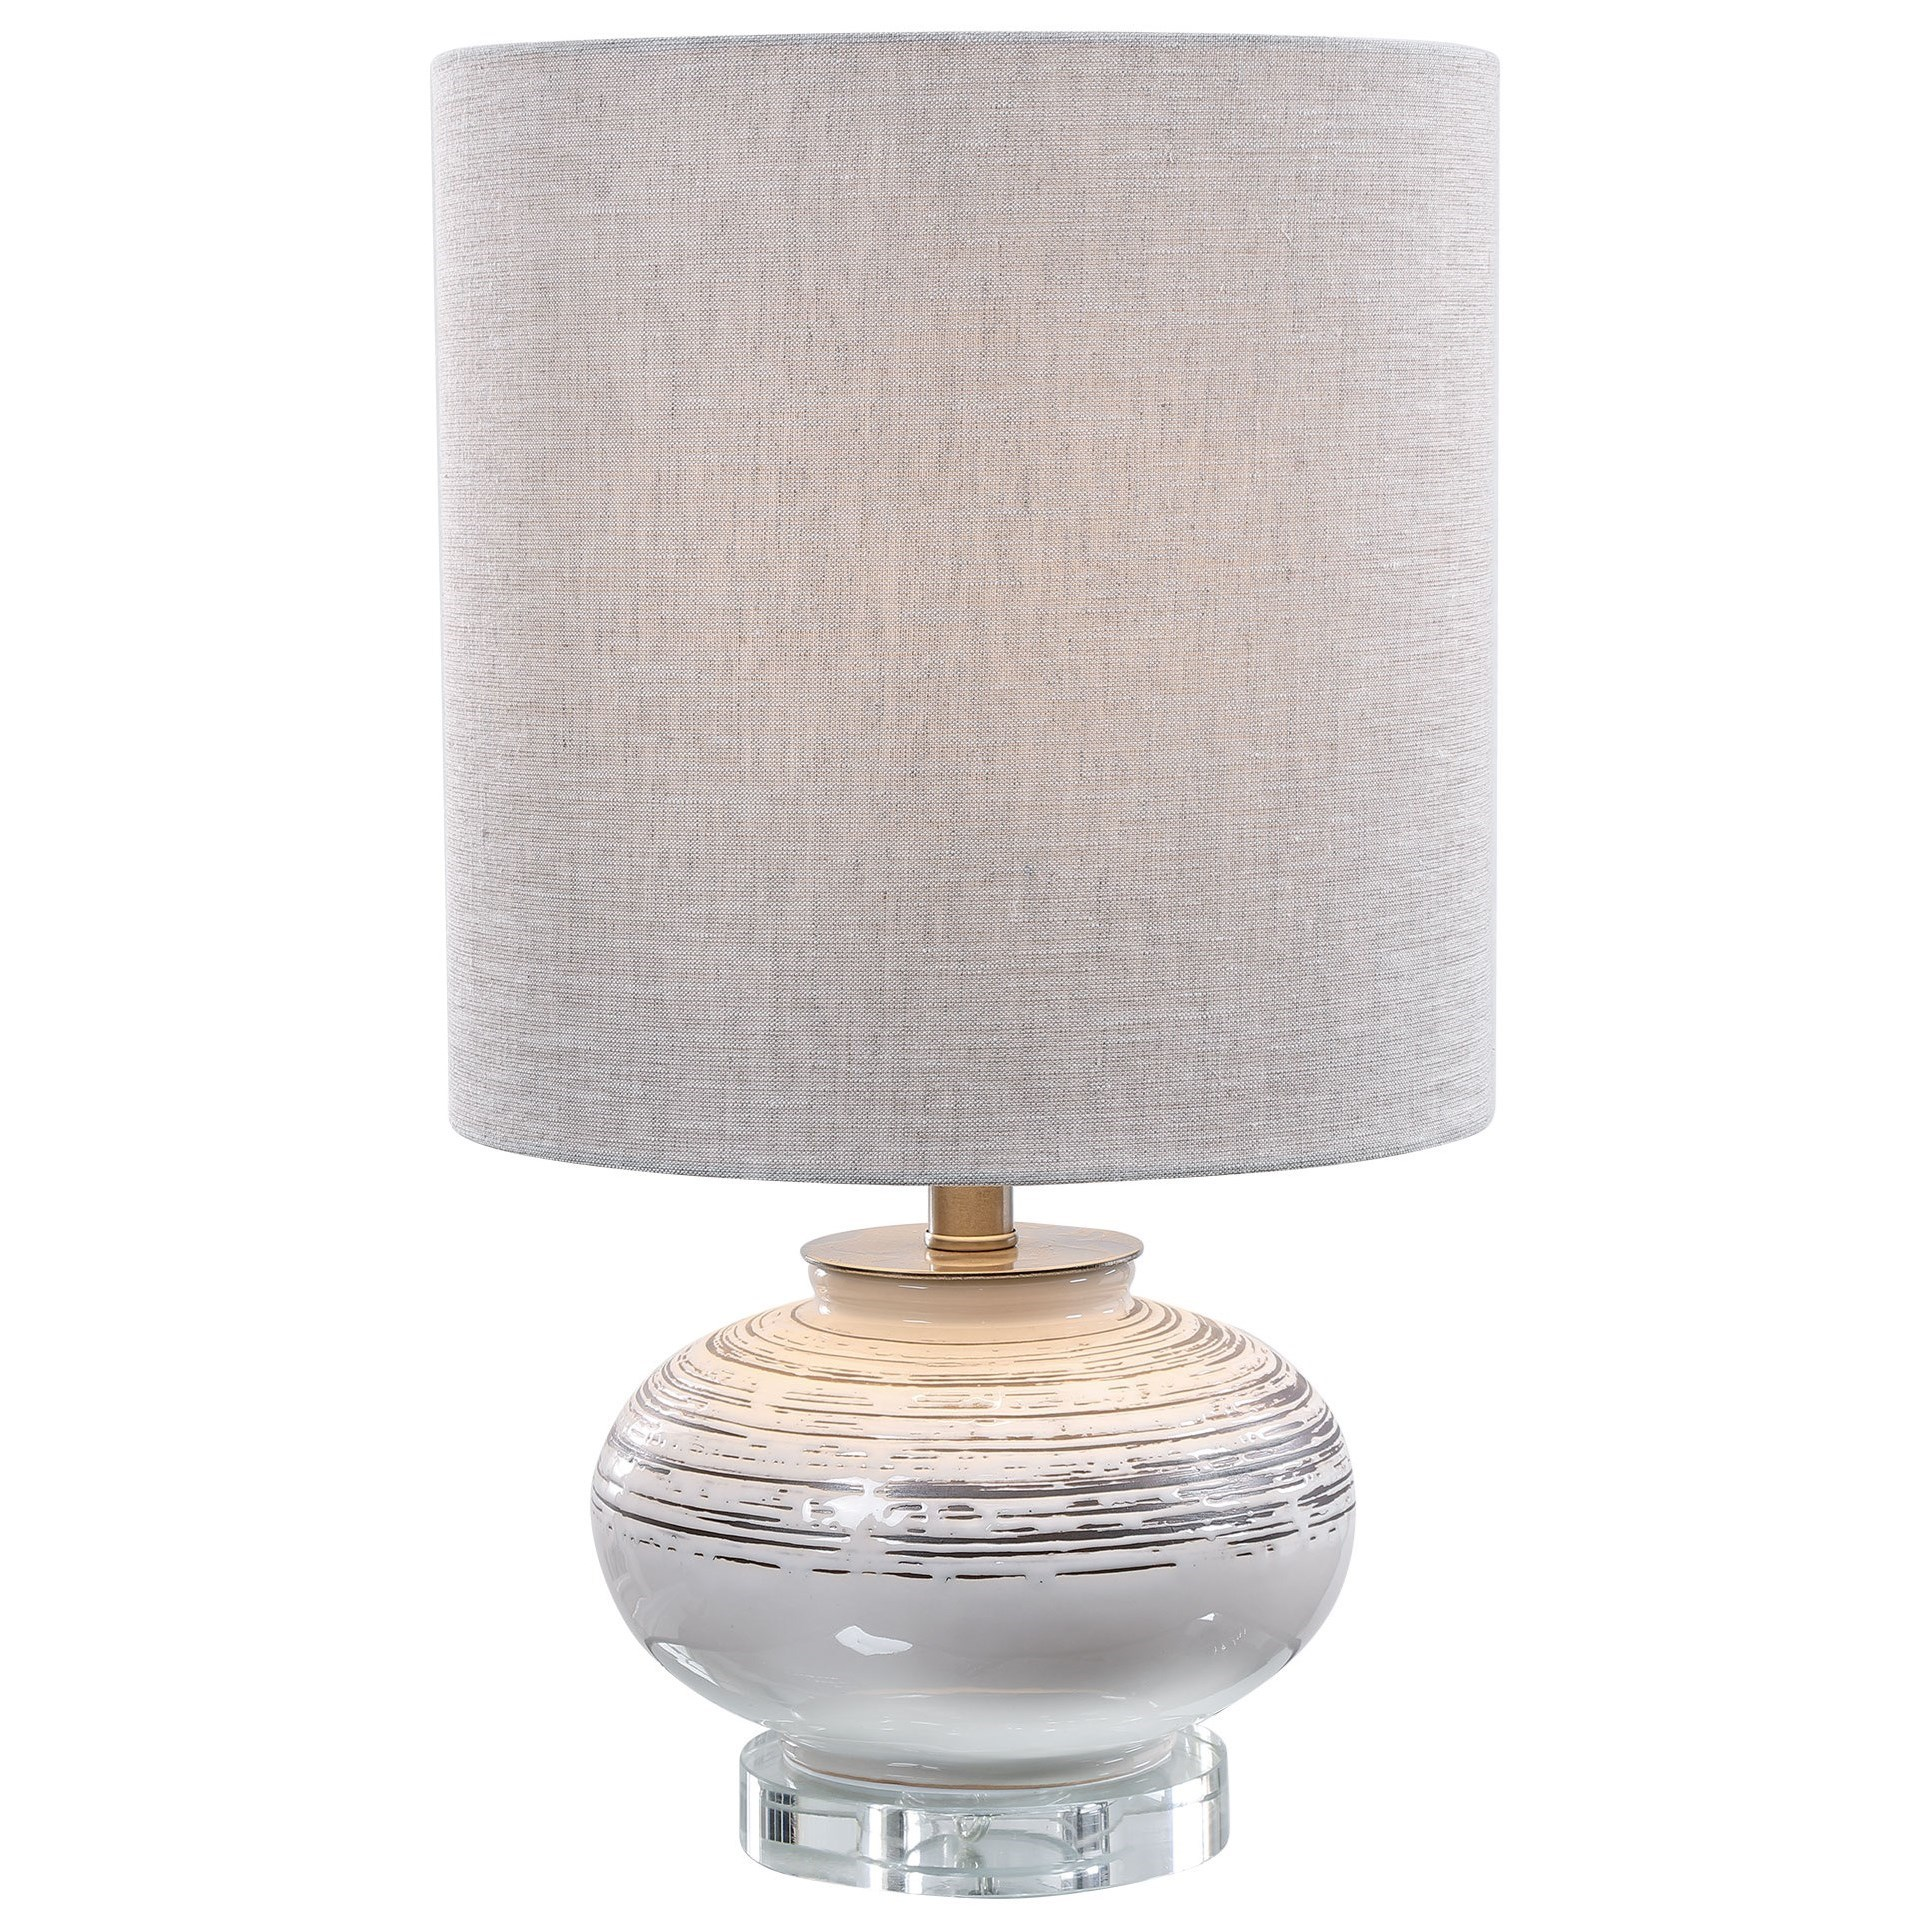 Accent Lamps Lenta Off-White Accent Lamp by Uttermost at Sprintz Furniture